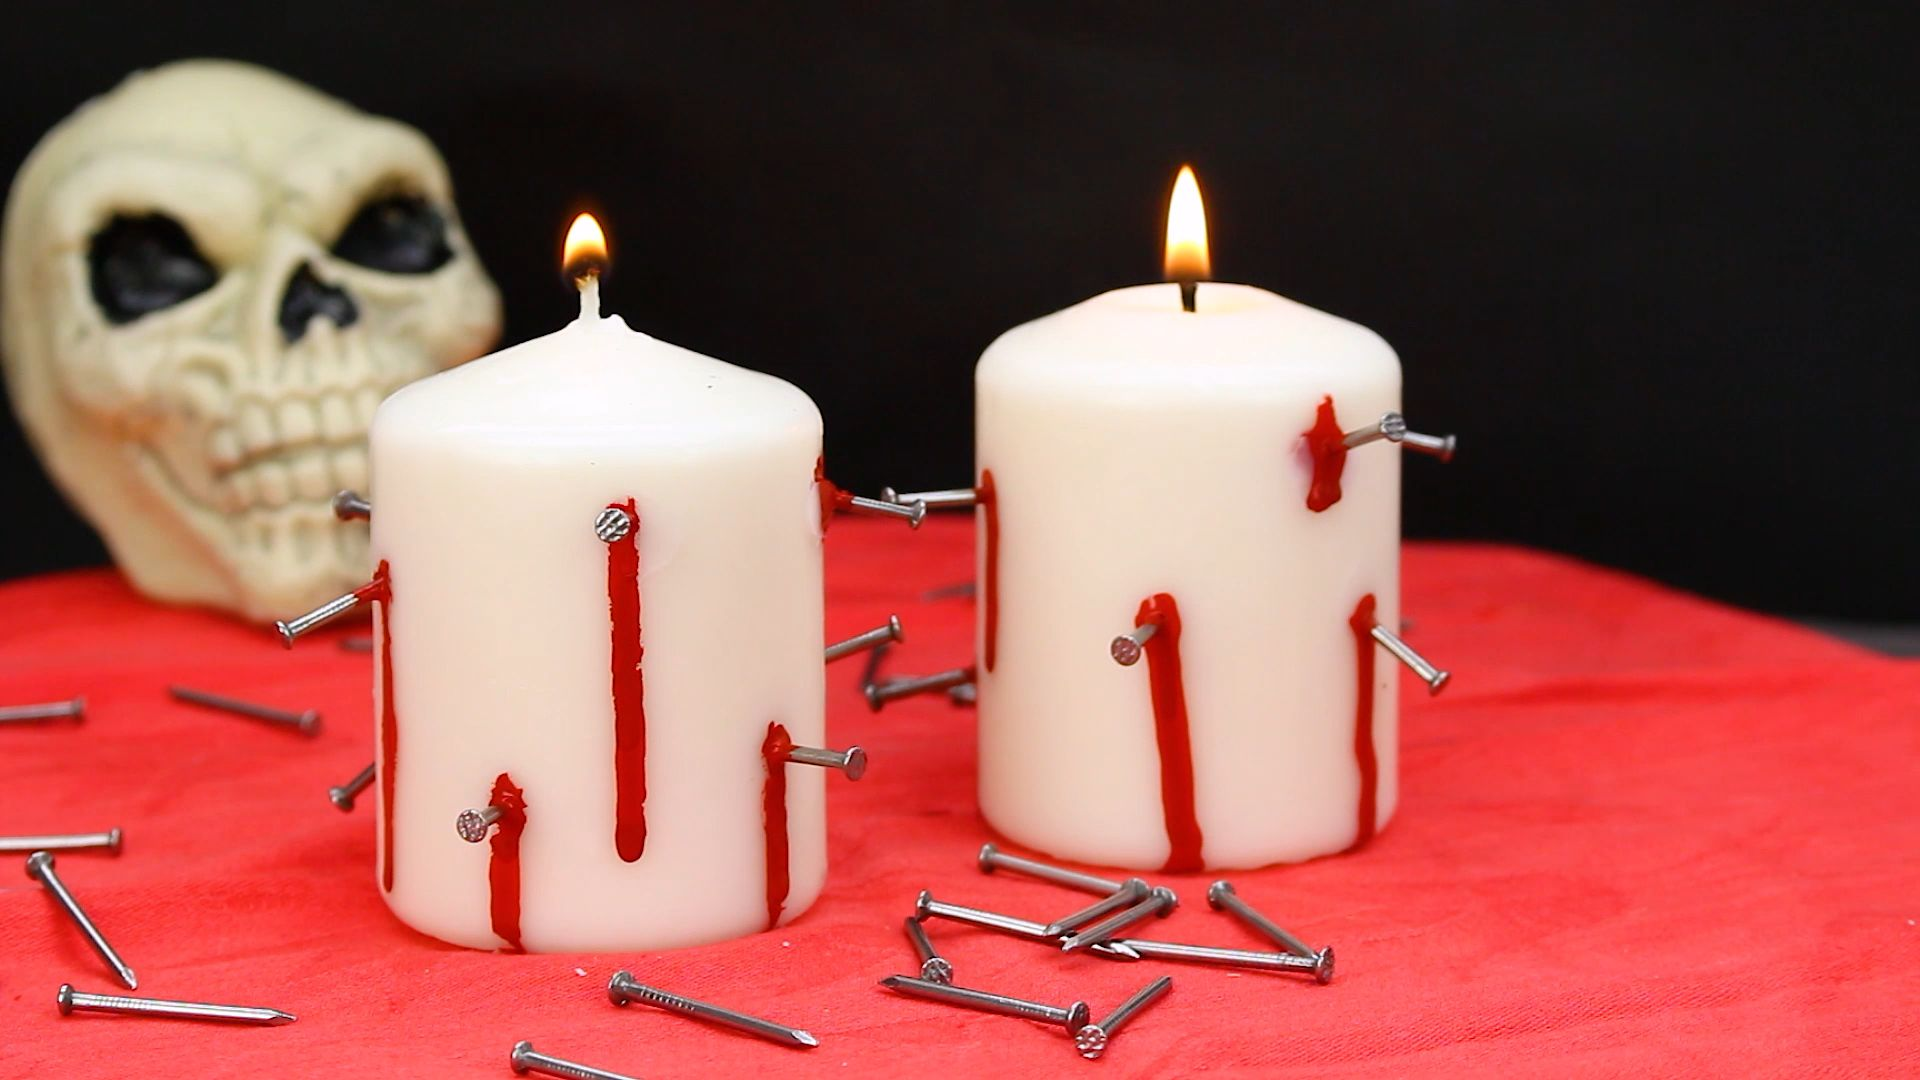 diy halloween candle projects with spooky designs - DIY Halloween Candle Projects With Spooky Designs